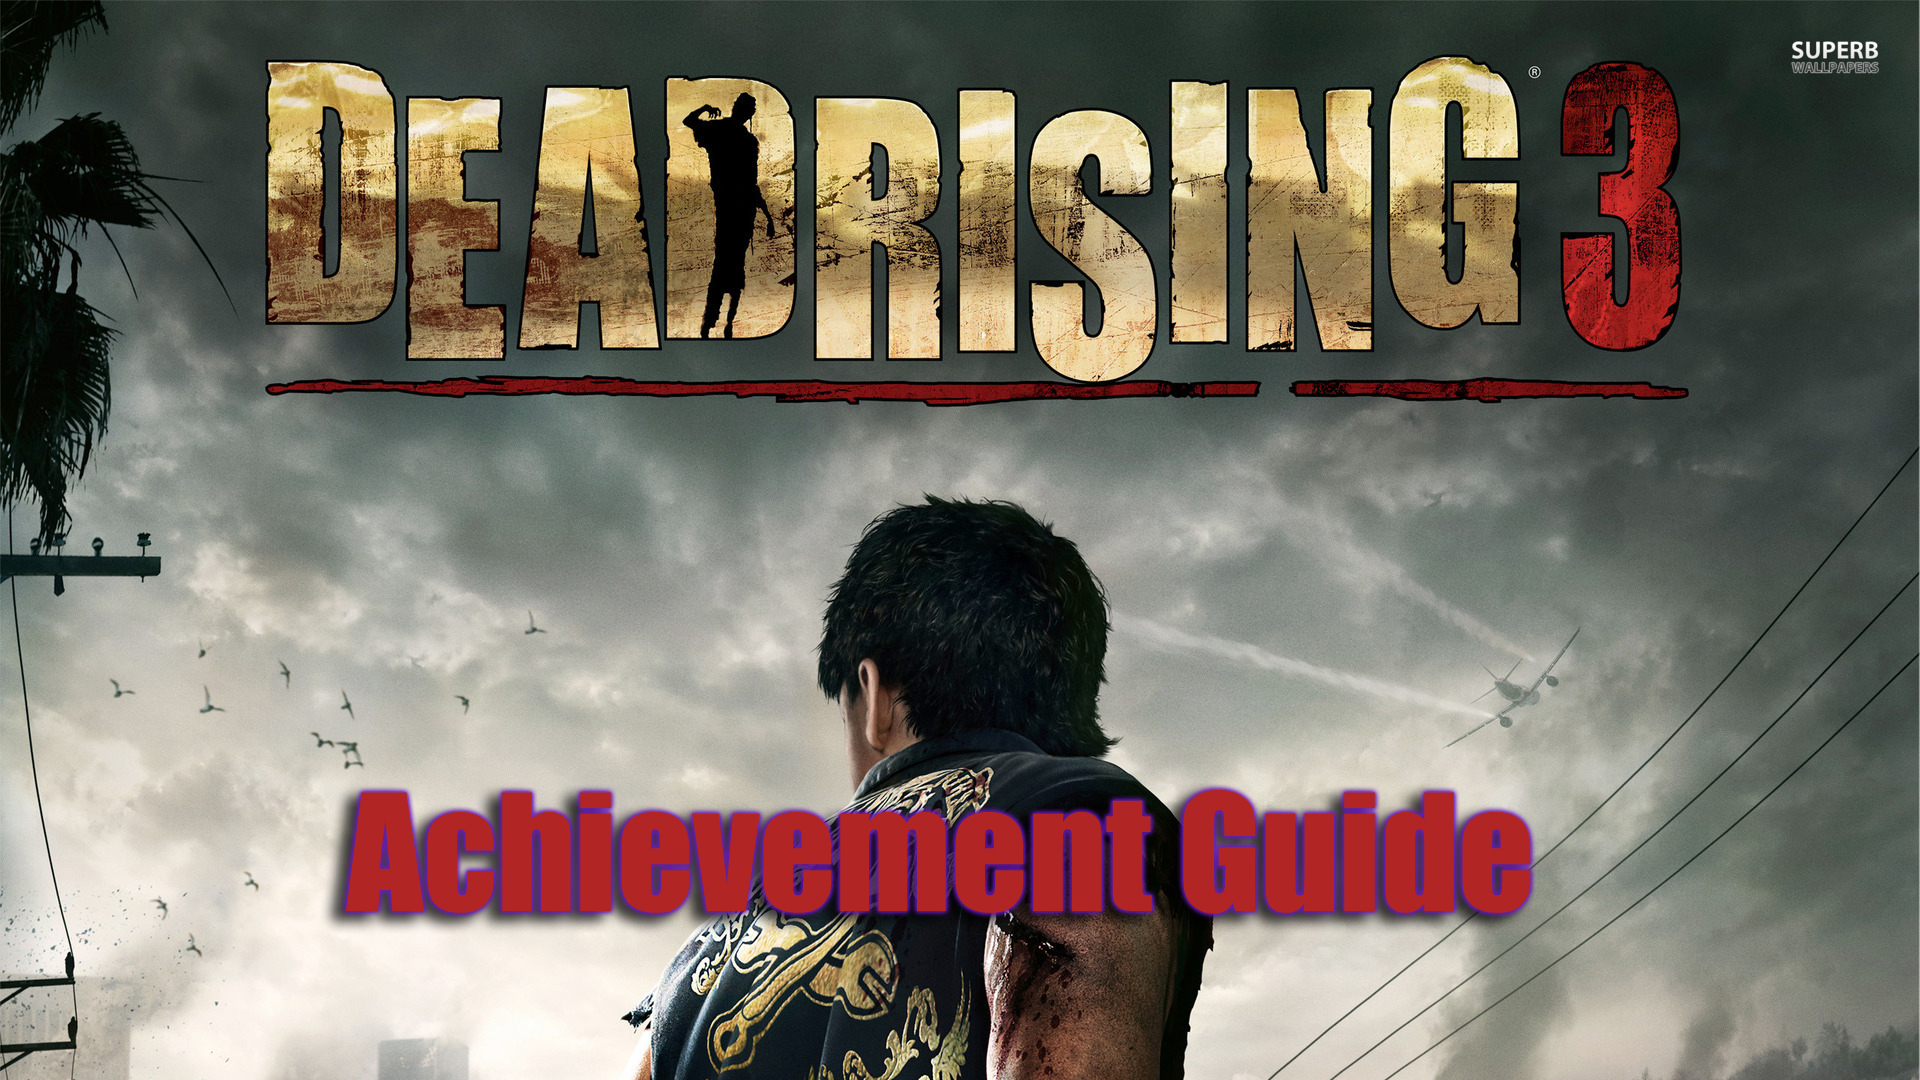 Steam community guide 100 achievement guide dlc welcome to the dead rising 3 achievement guide malvernweather Images